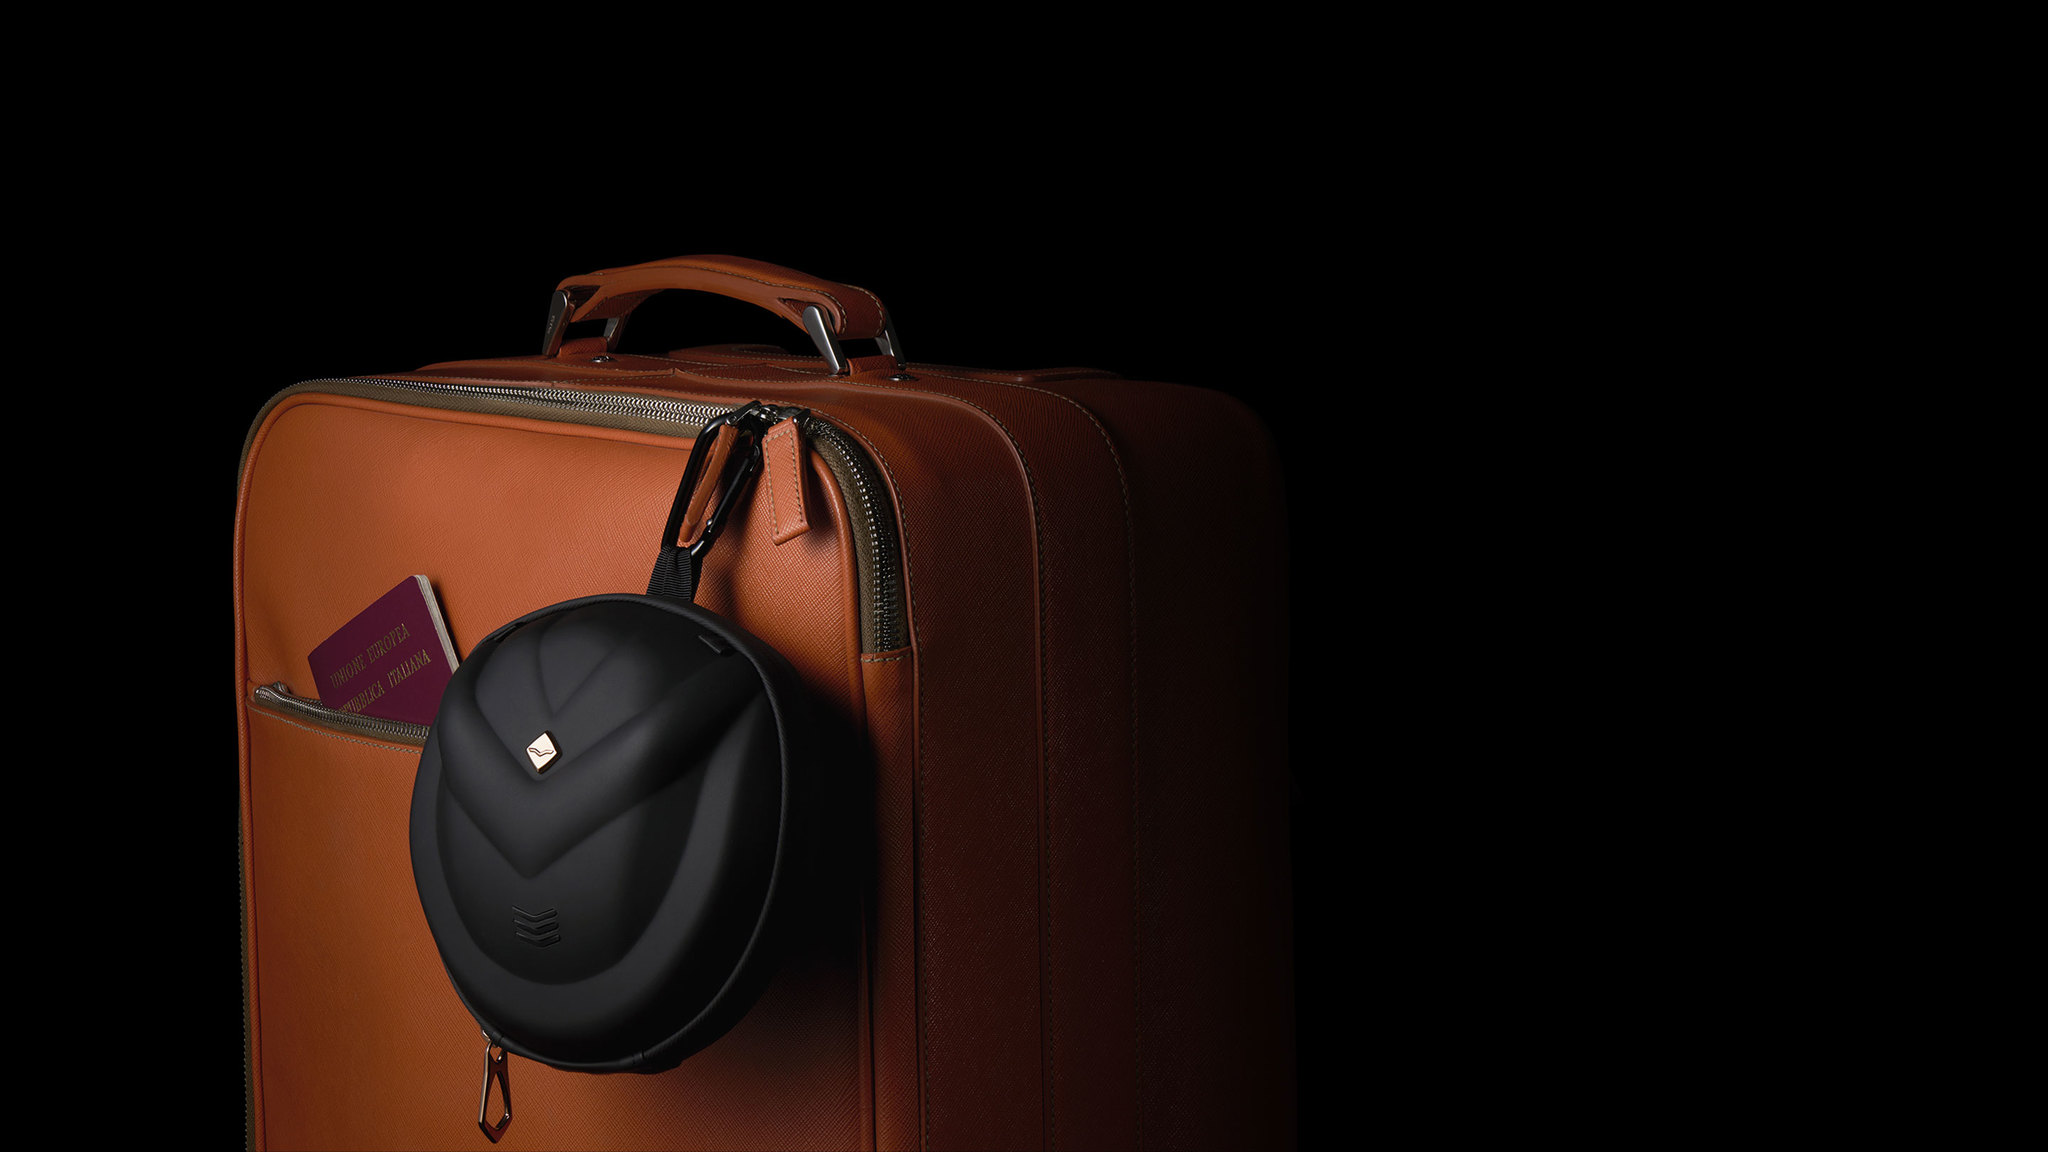 Crossfade 2 Wireless in its case and clipped to an orange suitcase